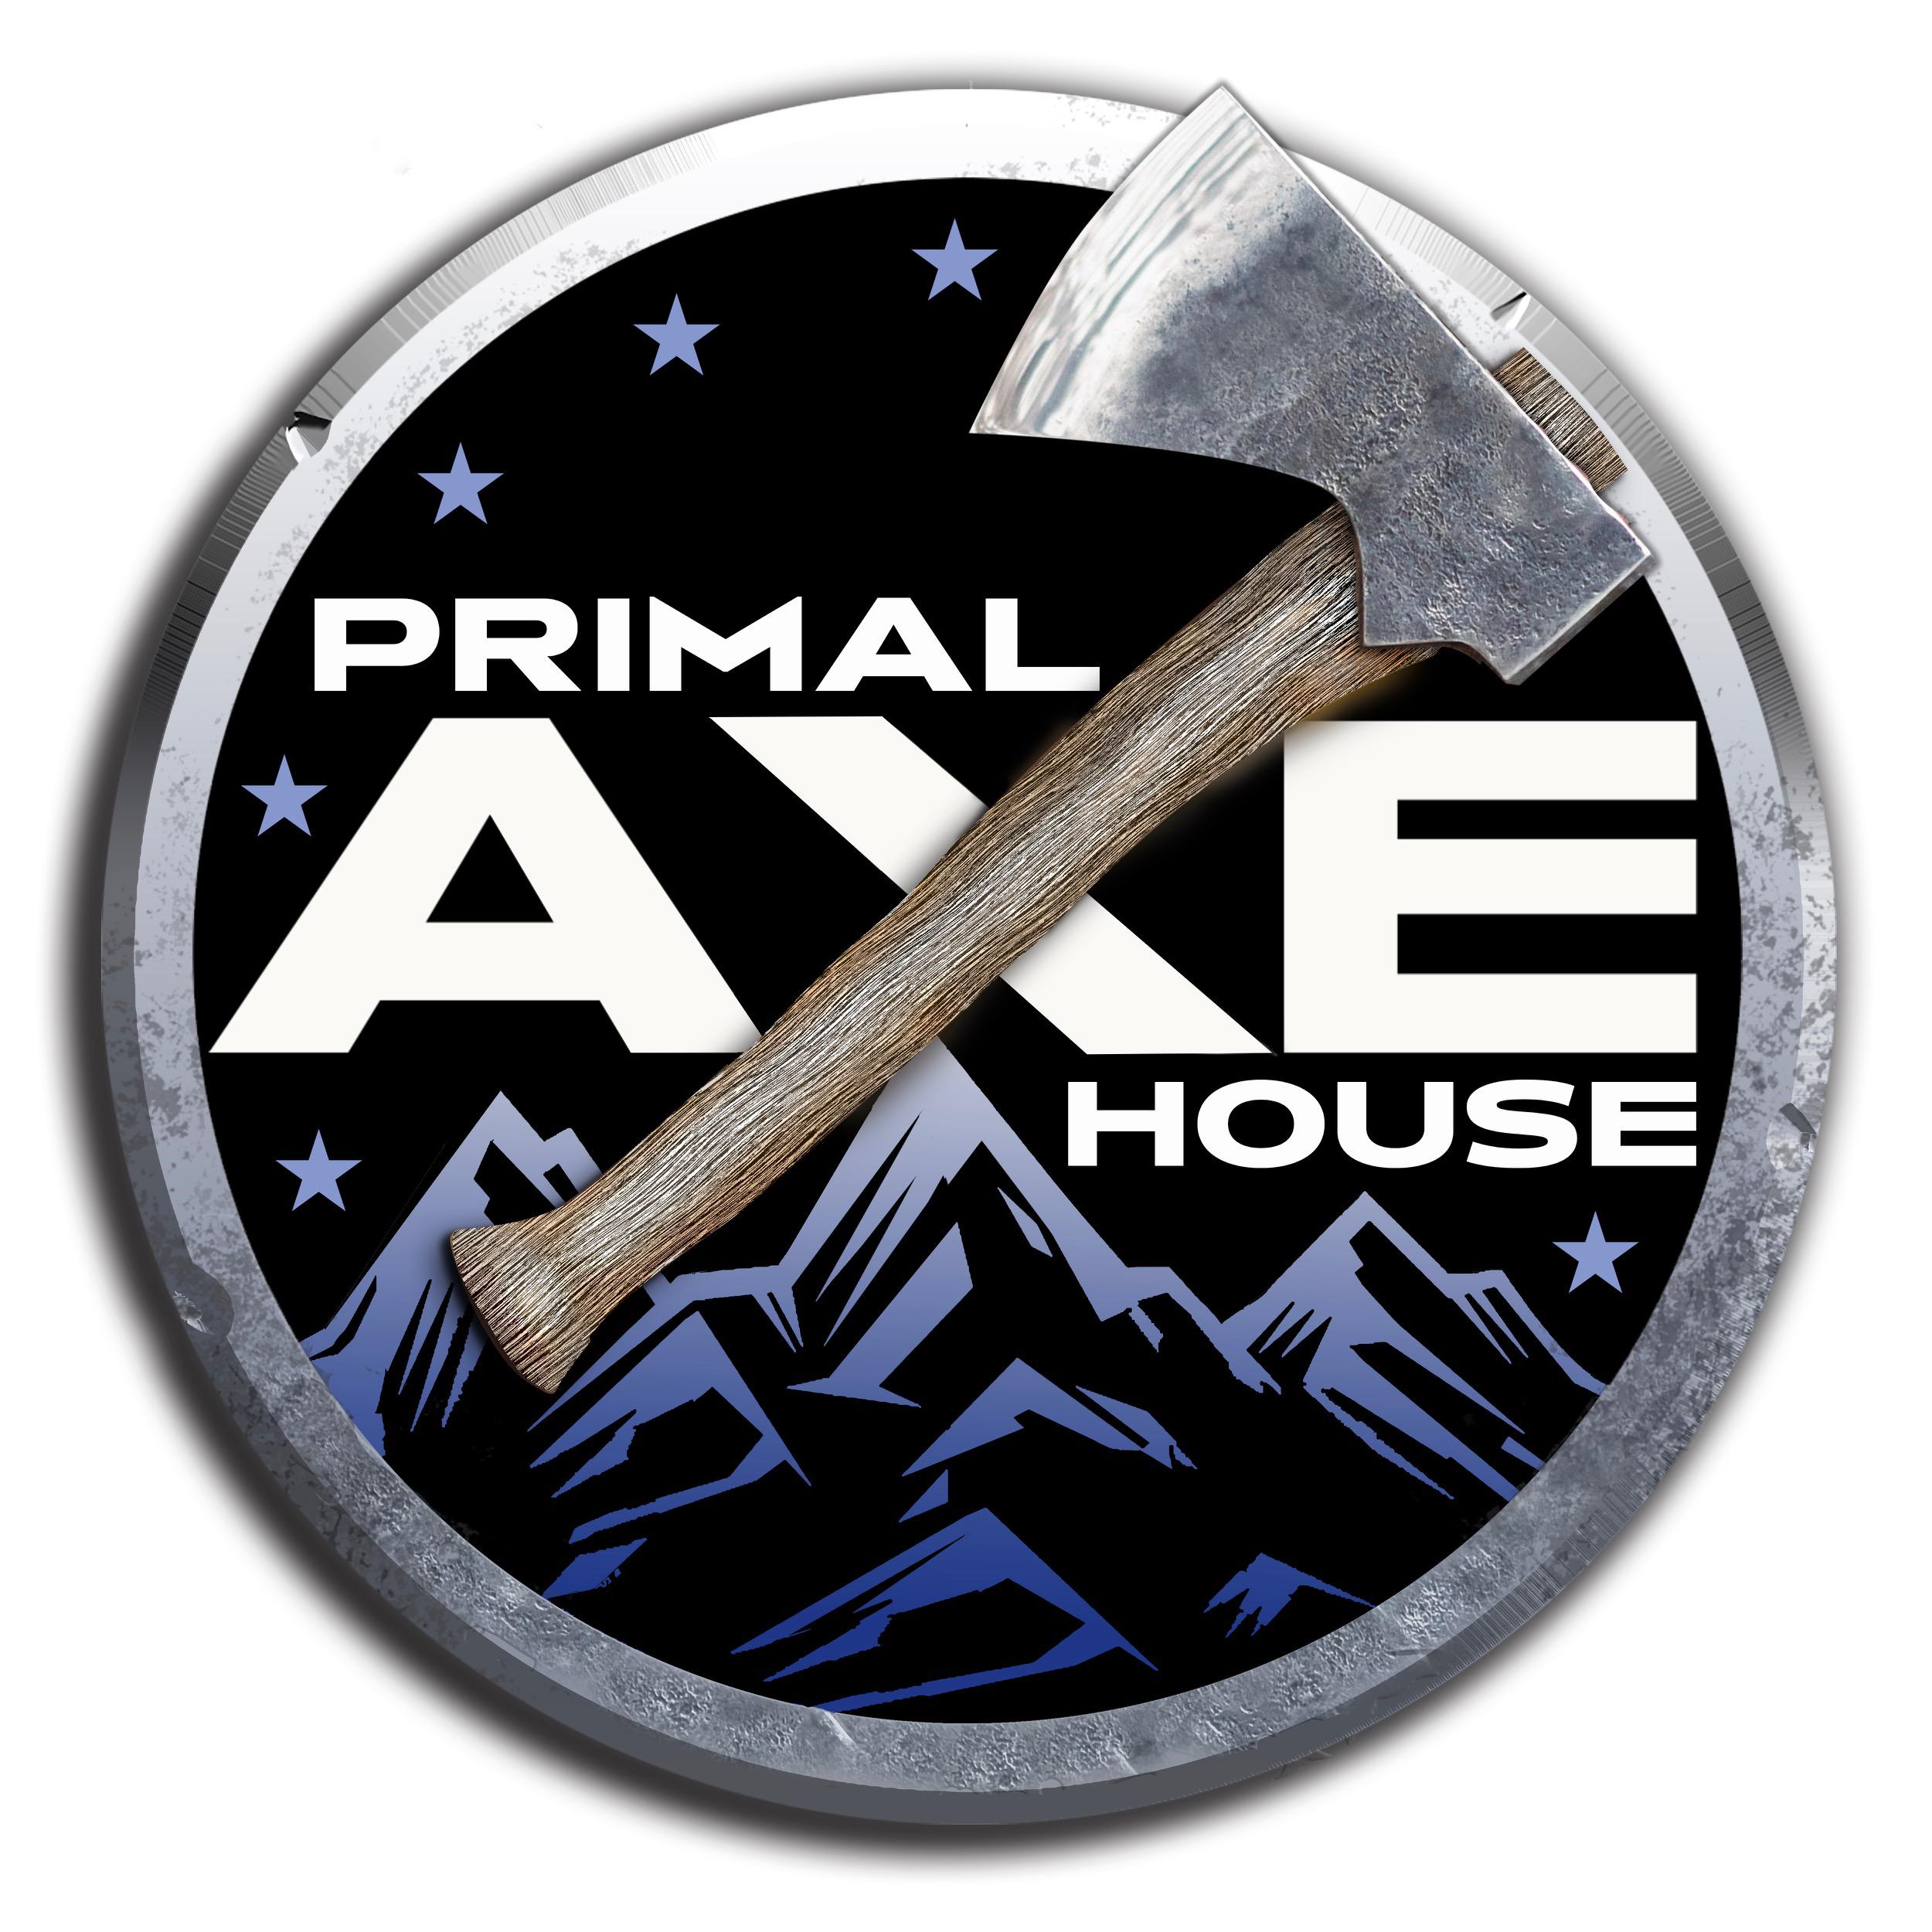 Primal Axe House - Sheridan, CO 80110 - (610)850-4786 | ShowMeLocal.com